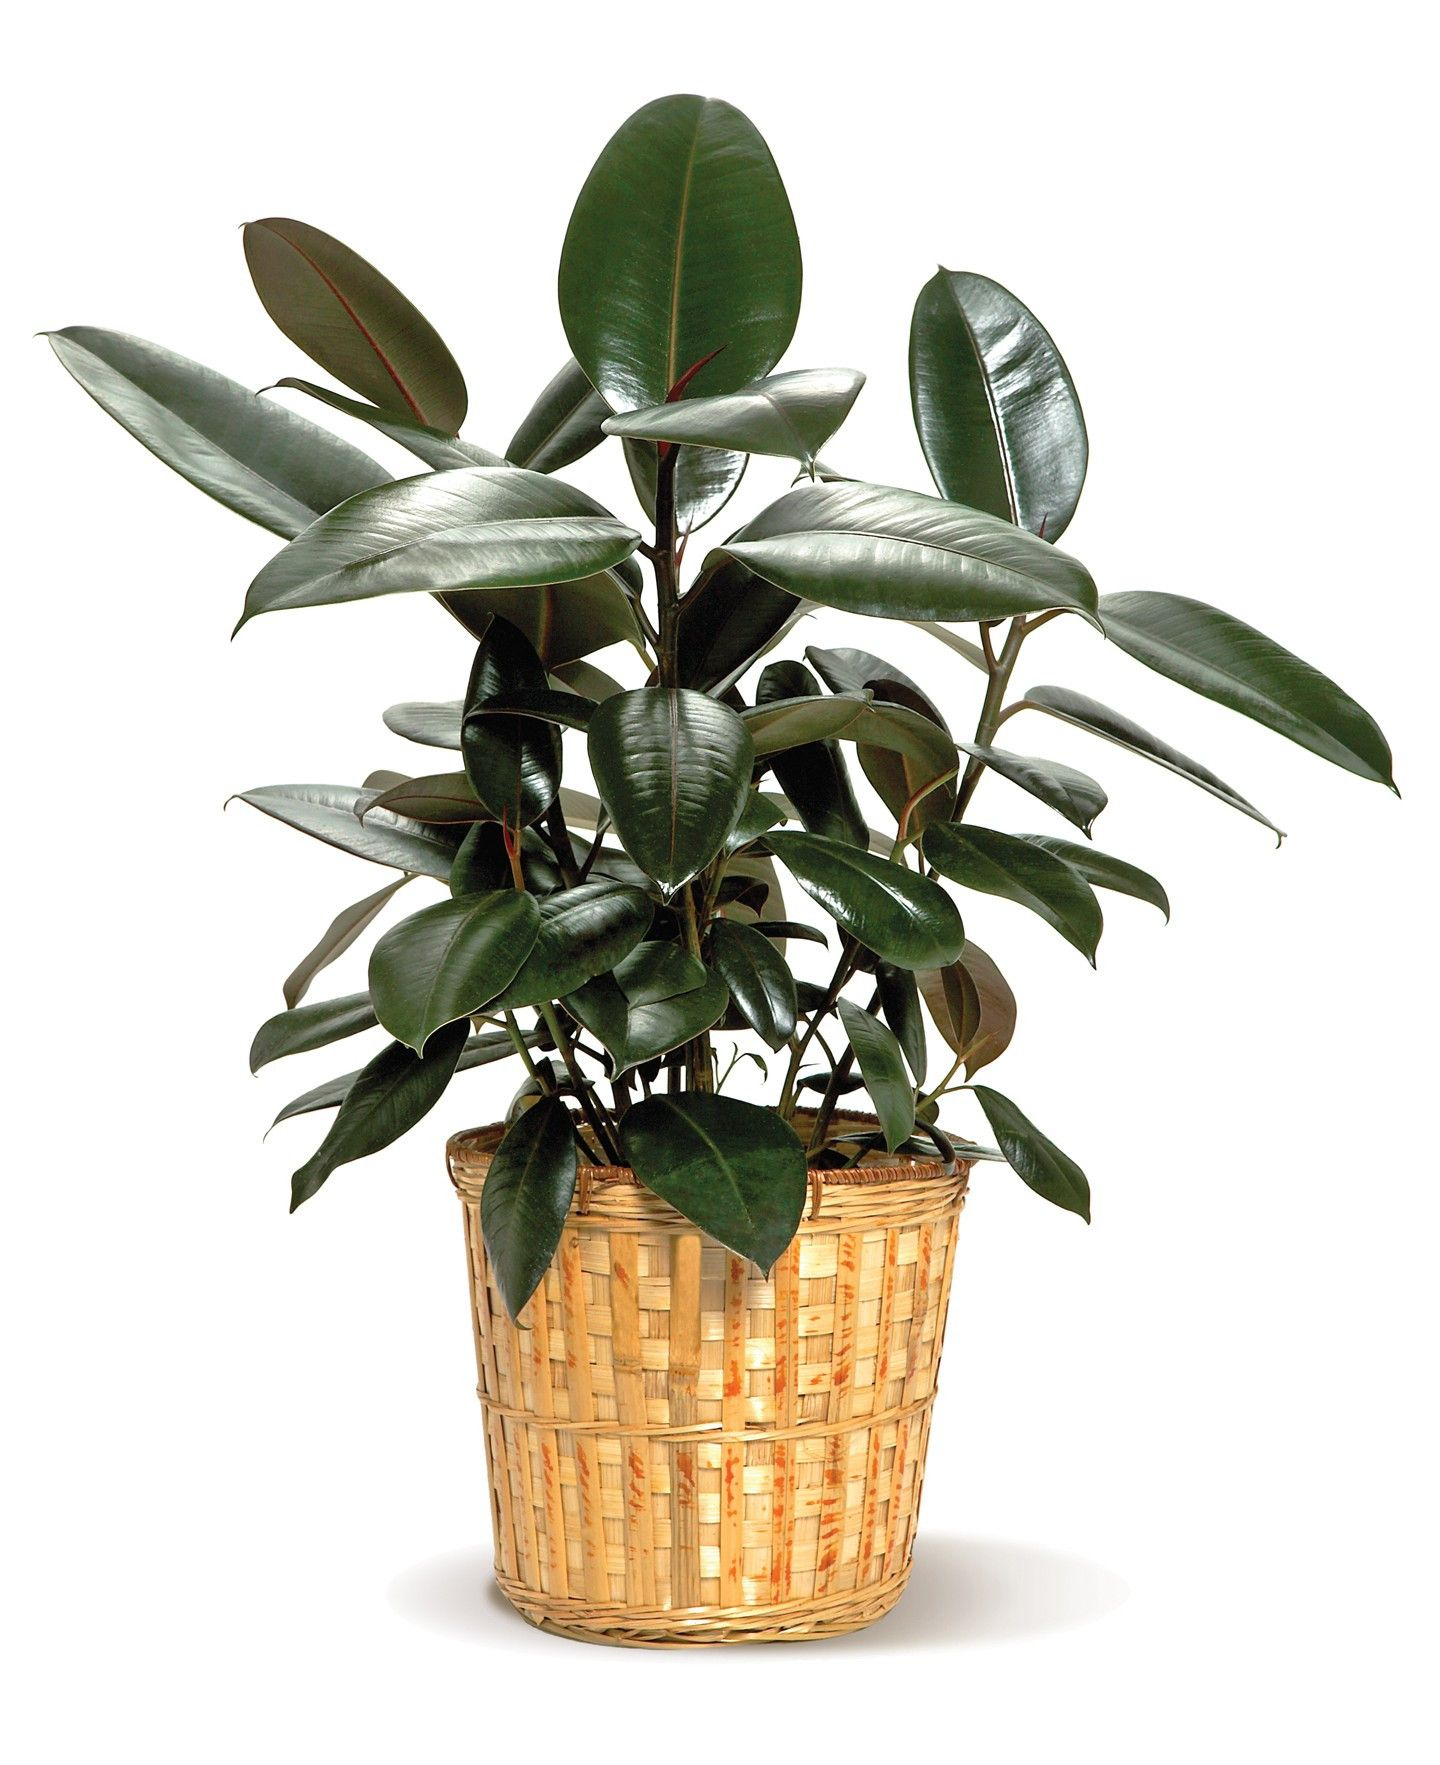 Rubber Plant Toxic To Cats